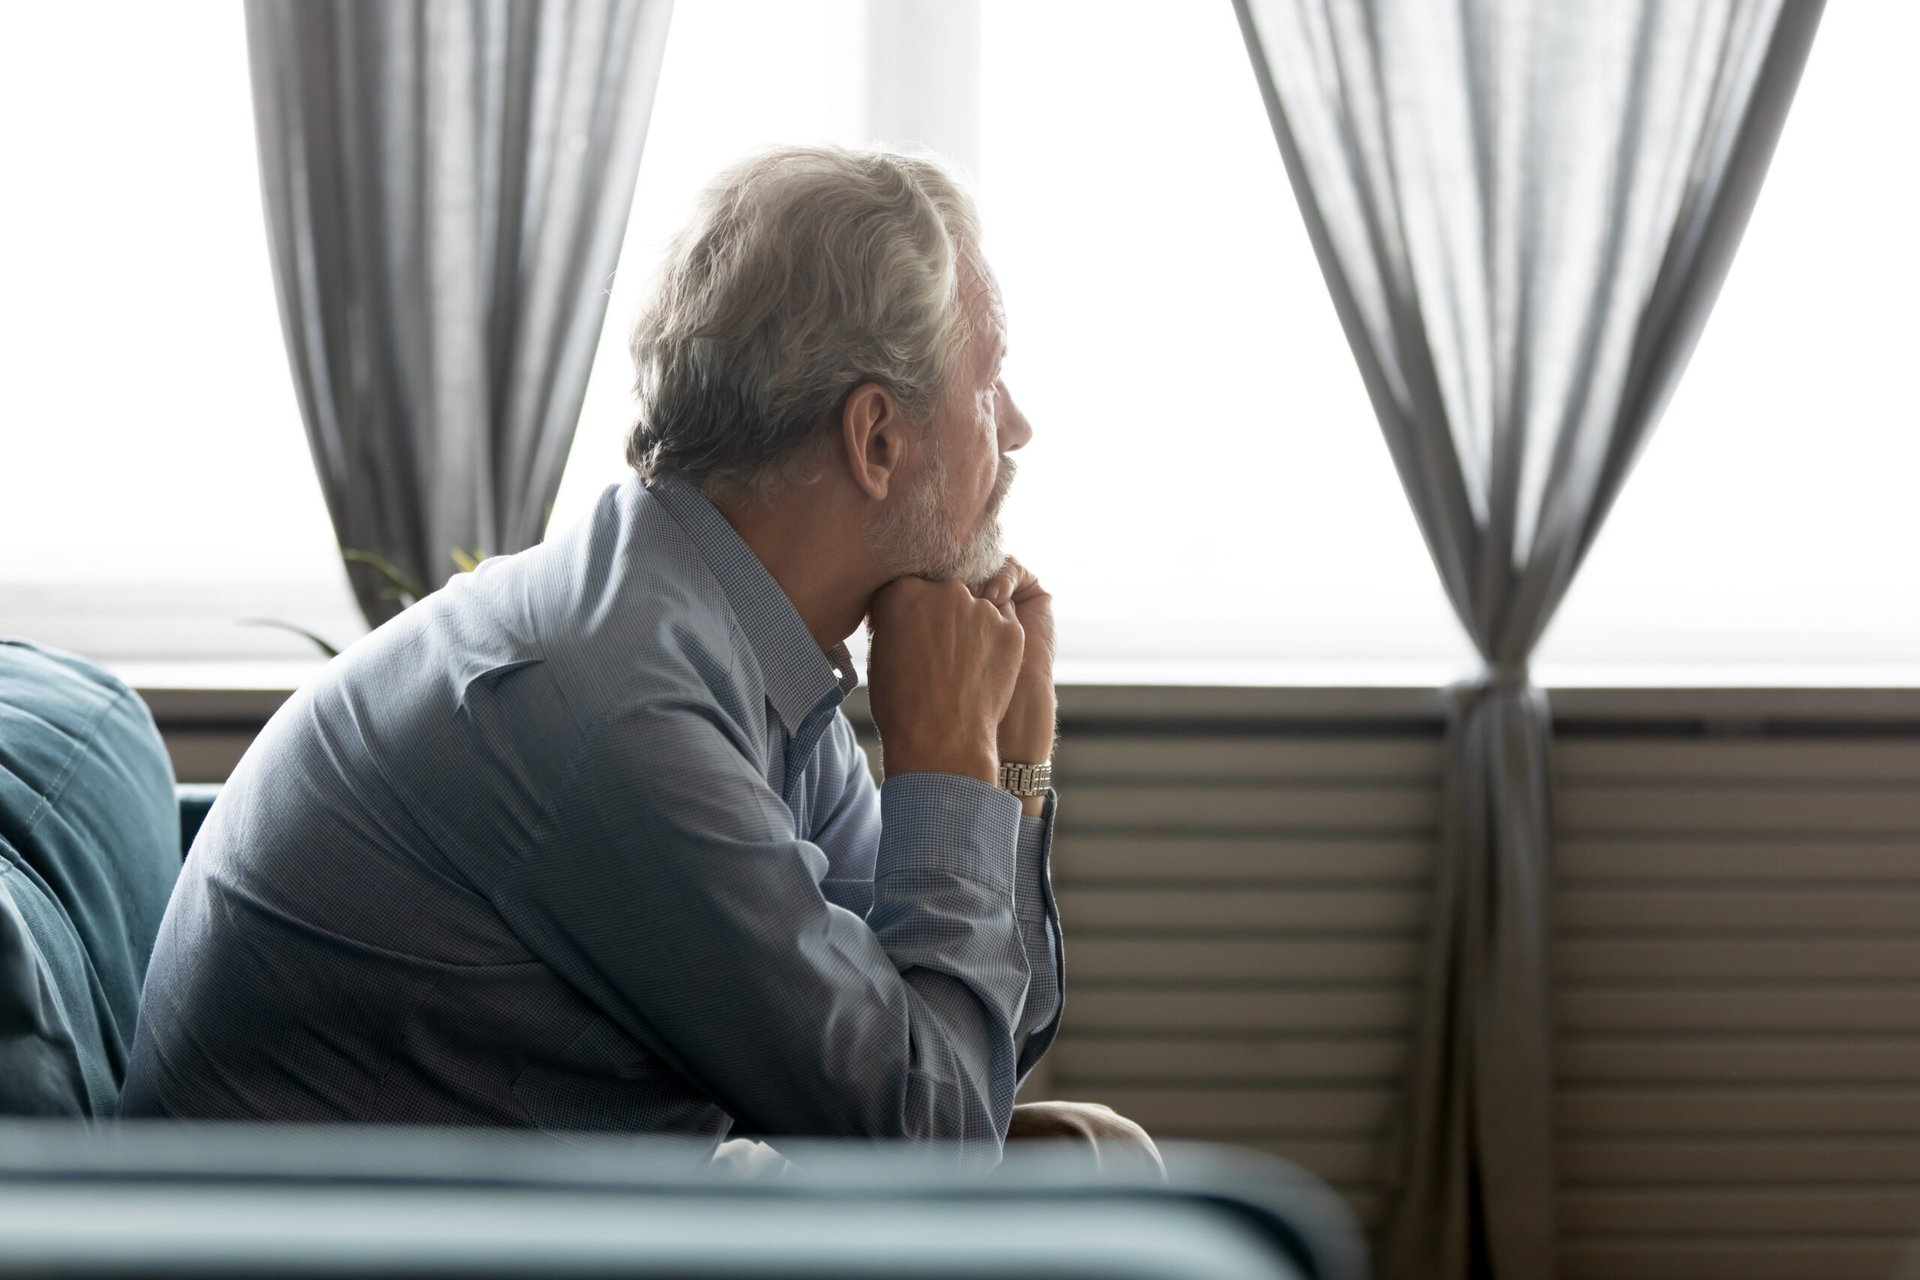 Sad senior looking out a window from his sofa